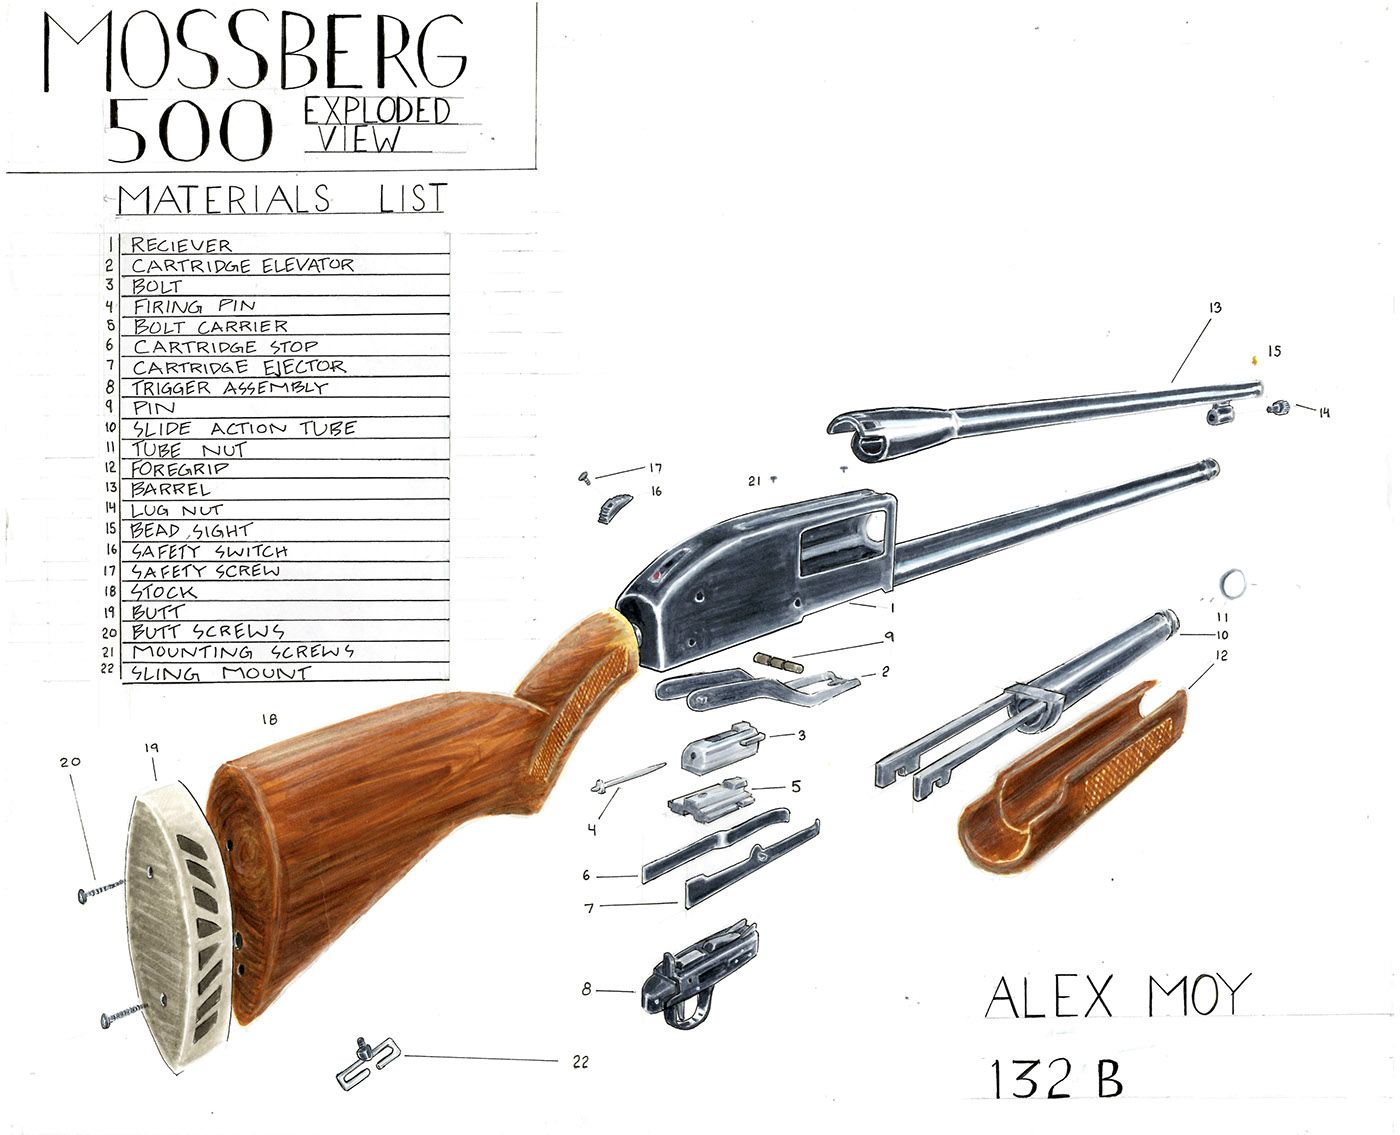 Mossberg 500 Exploded Diagram Simple Electrical Wiring 702 View 500a On Behance 935 Gun Parts Of A